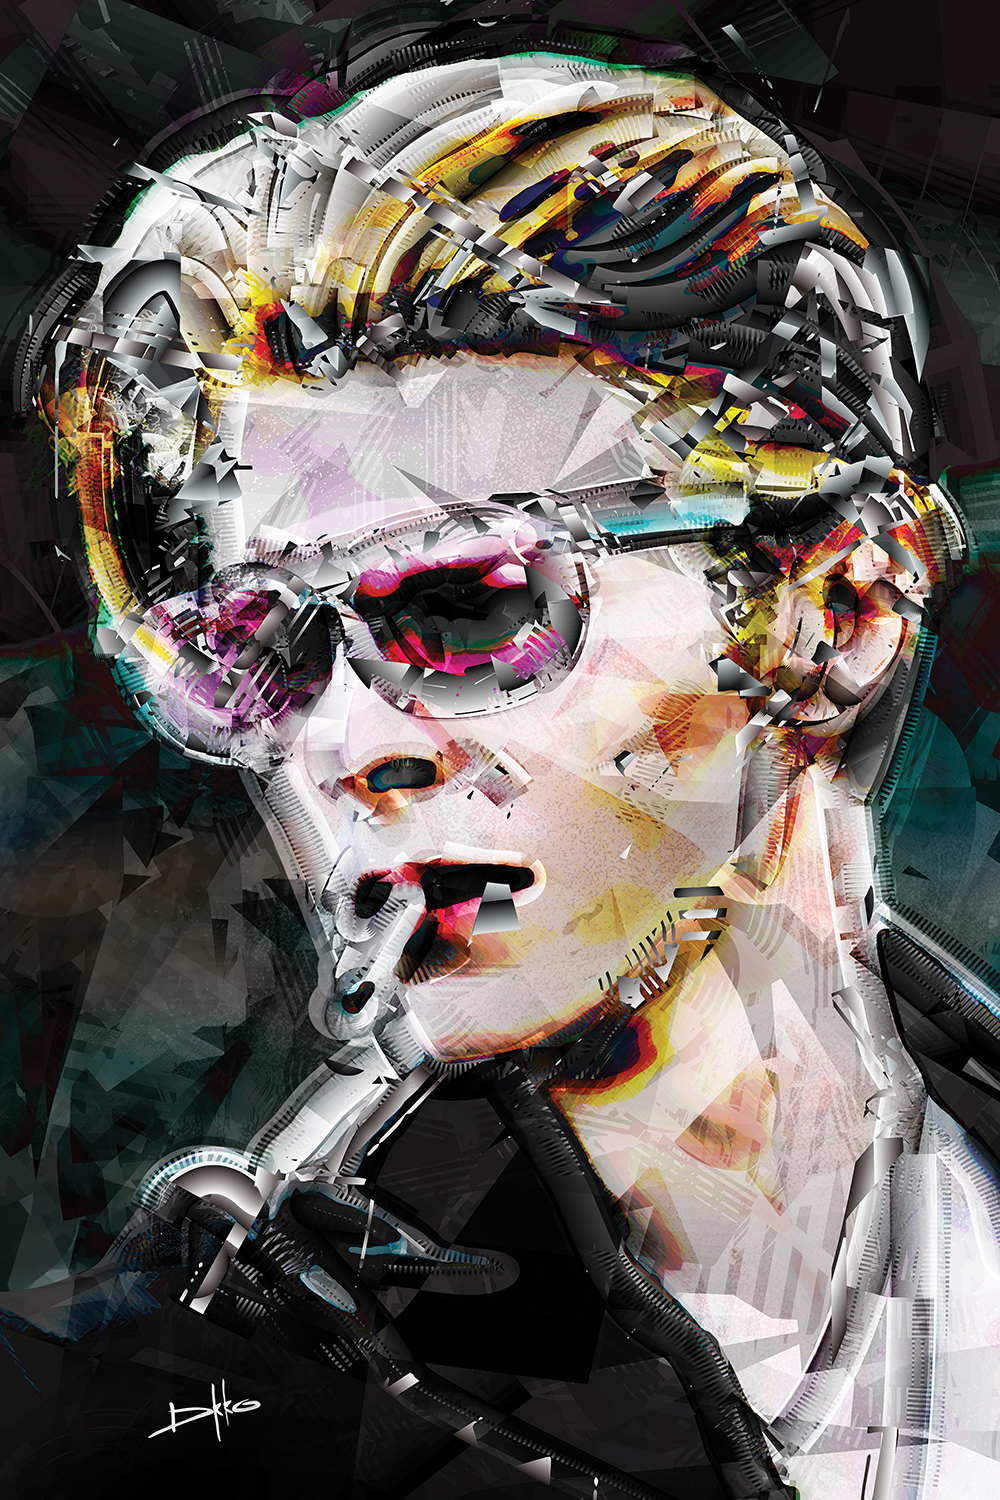 Collage-style image of David Bowie wearing pink sunglasses and smoking a cigarette